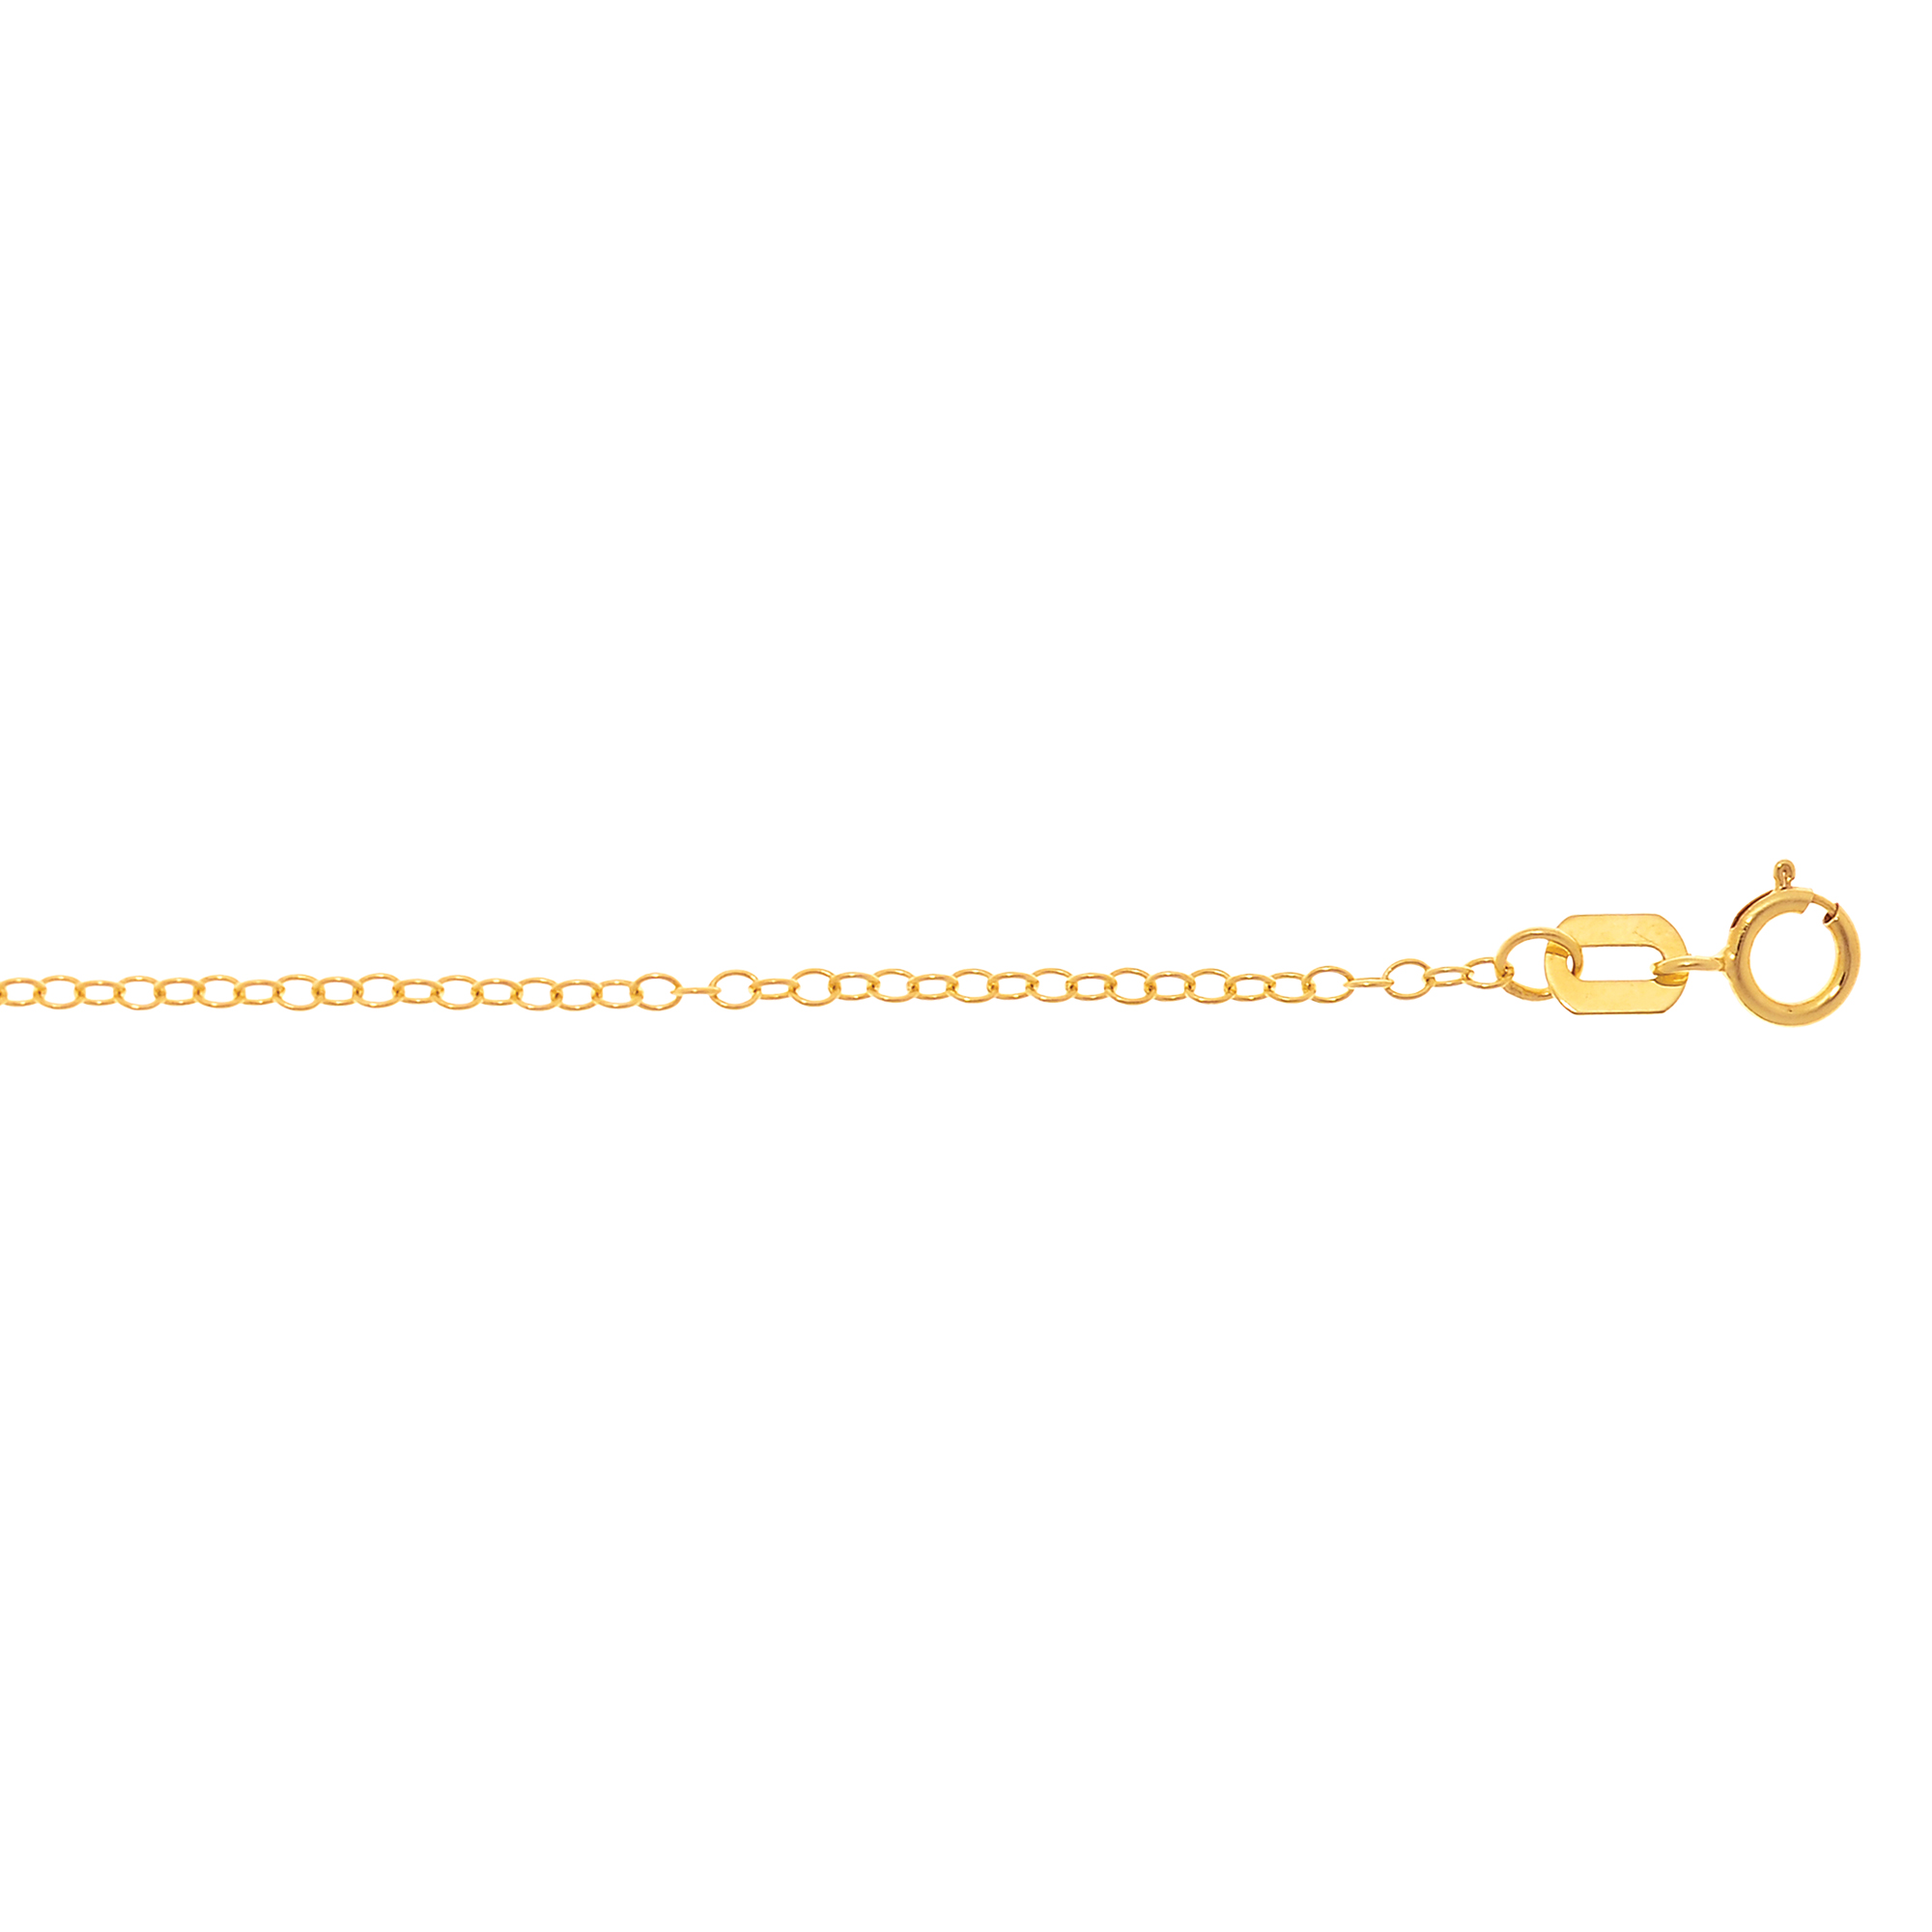 LUXURMAN Solid 14k Gold Cable Chain For Women Round 1.5mm Wide